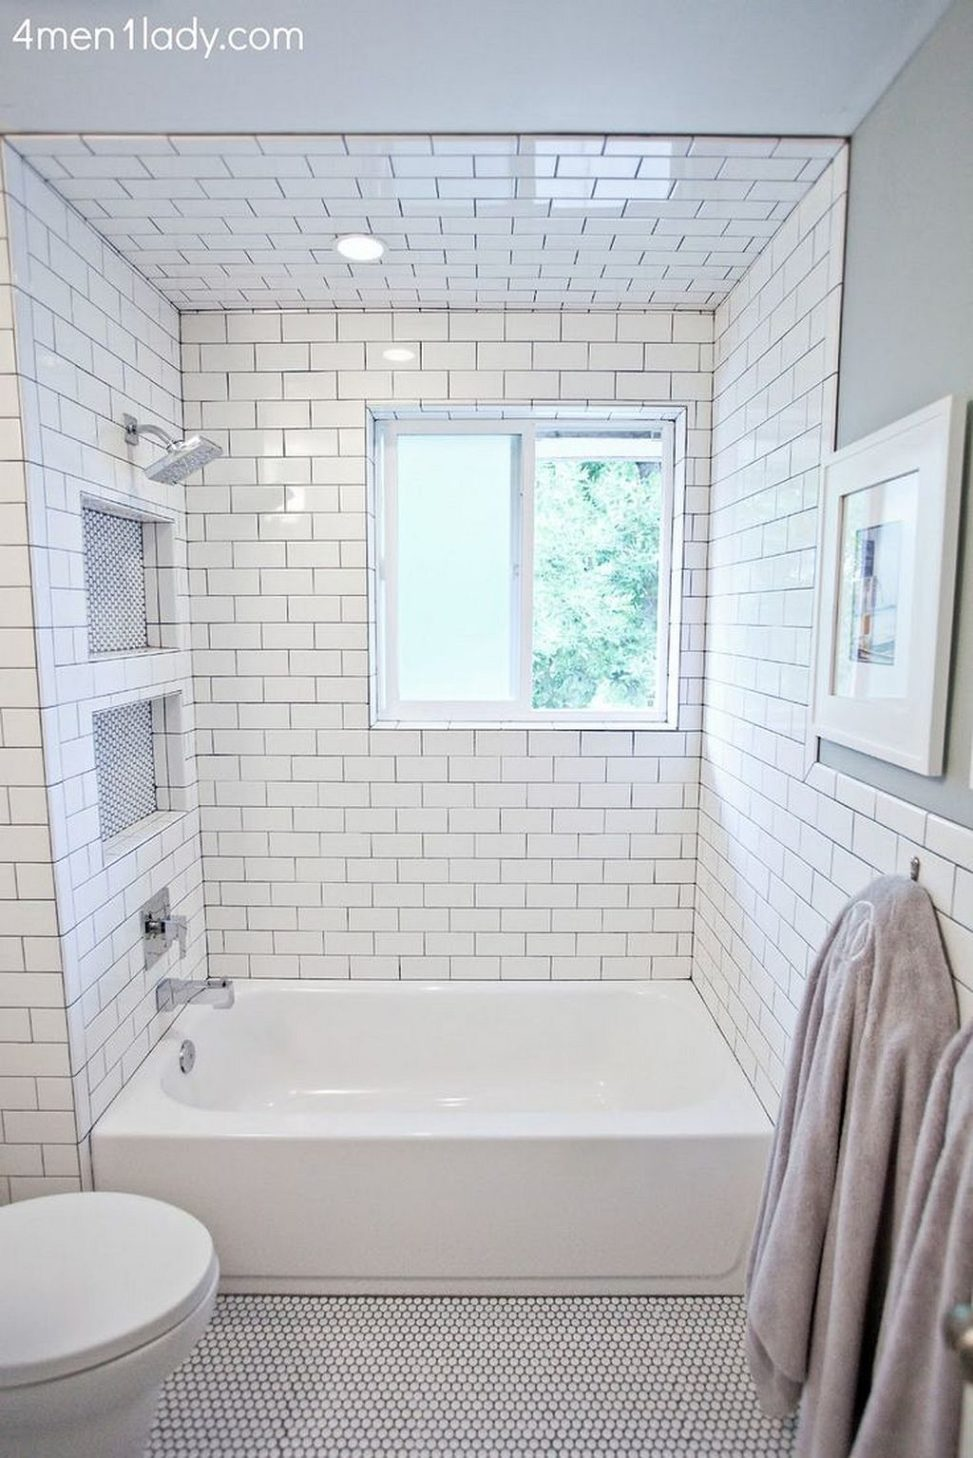 Tiny Bathroom Tub Shower Combo Remodeling Ideas 48 With Images